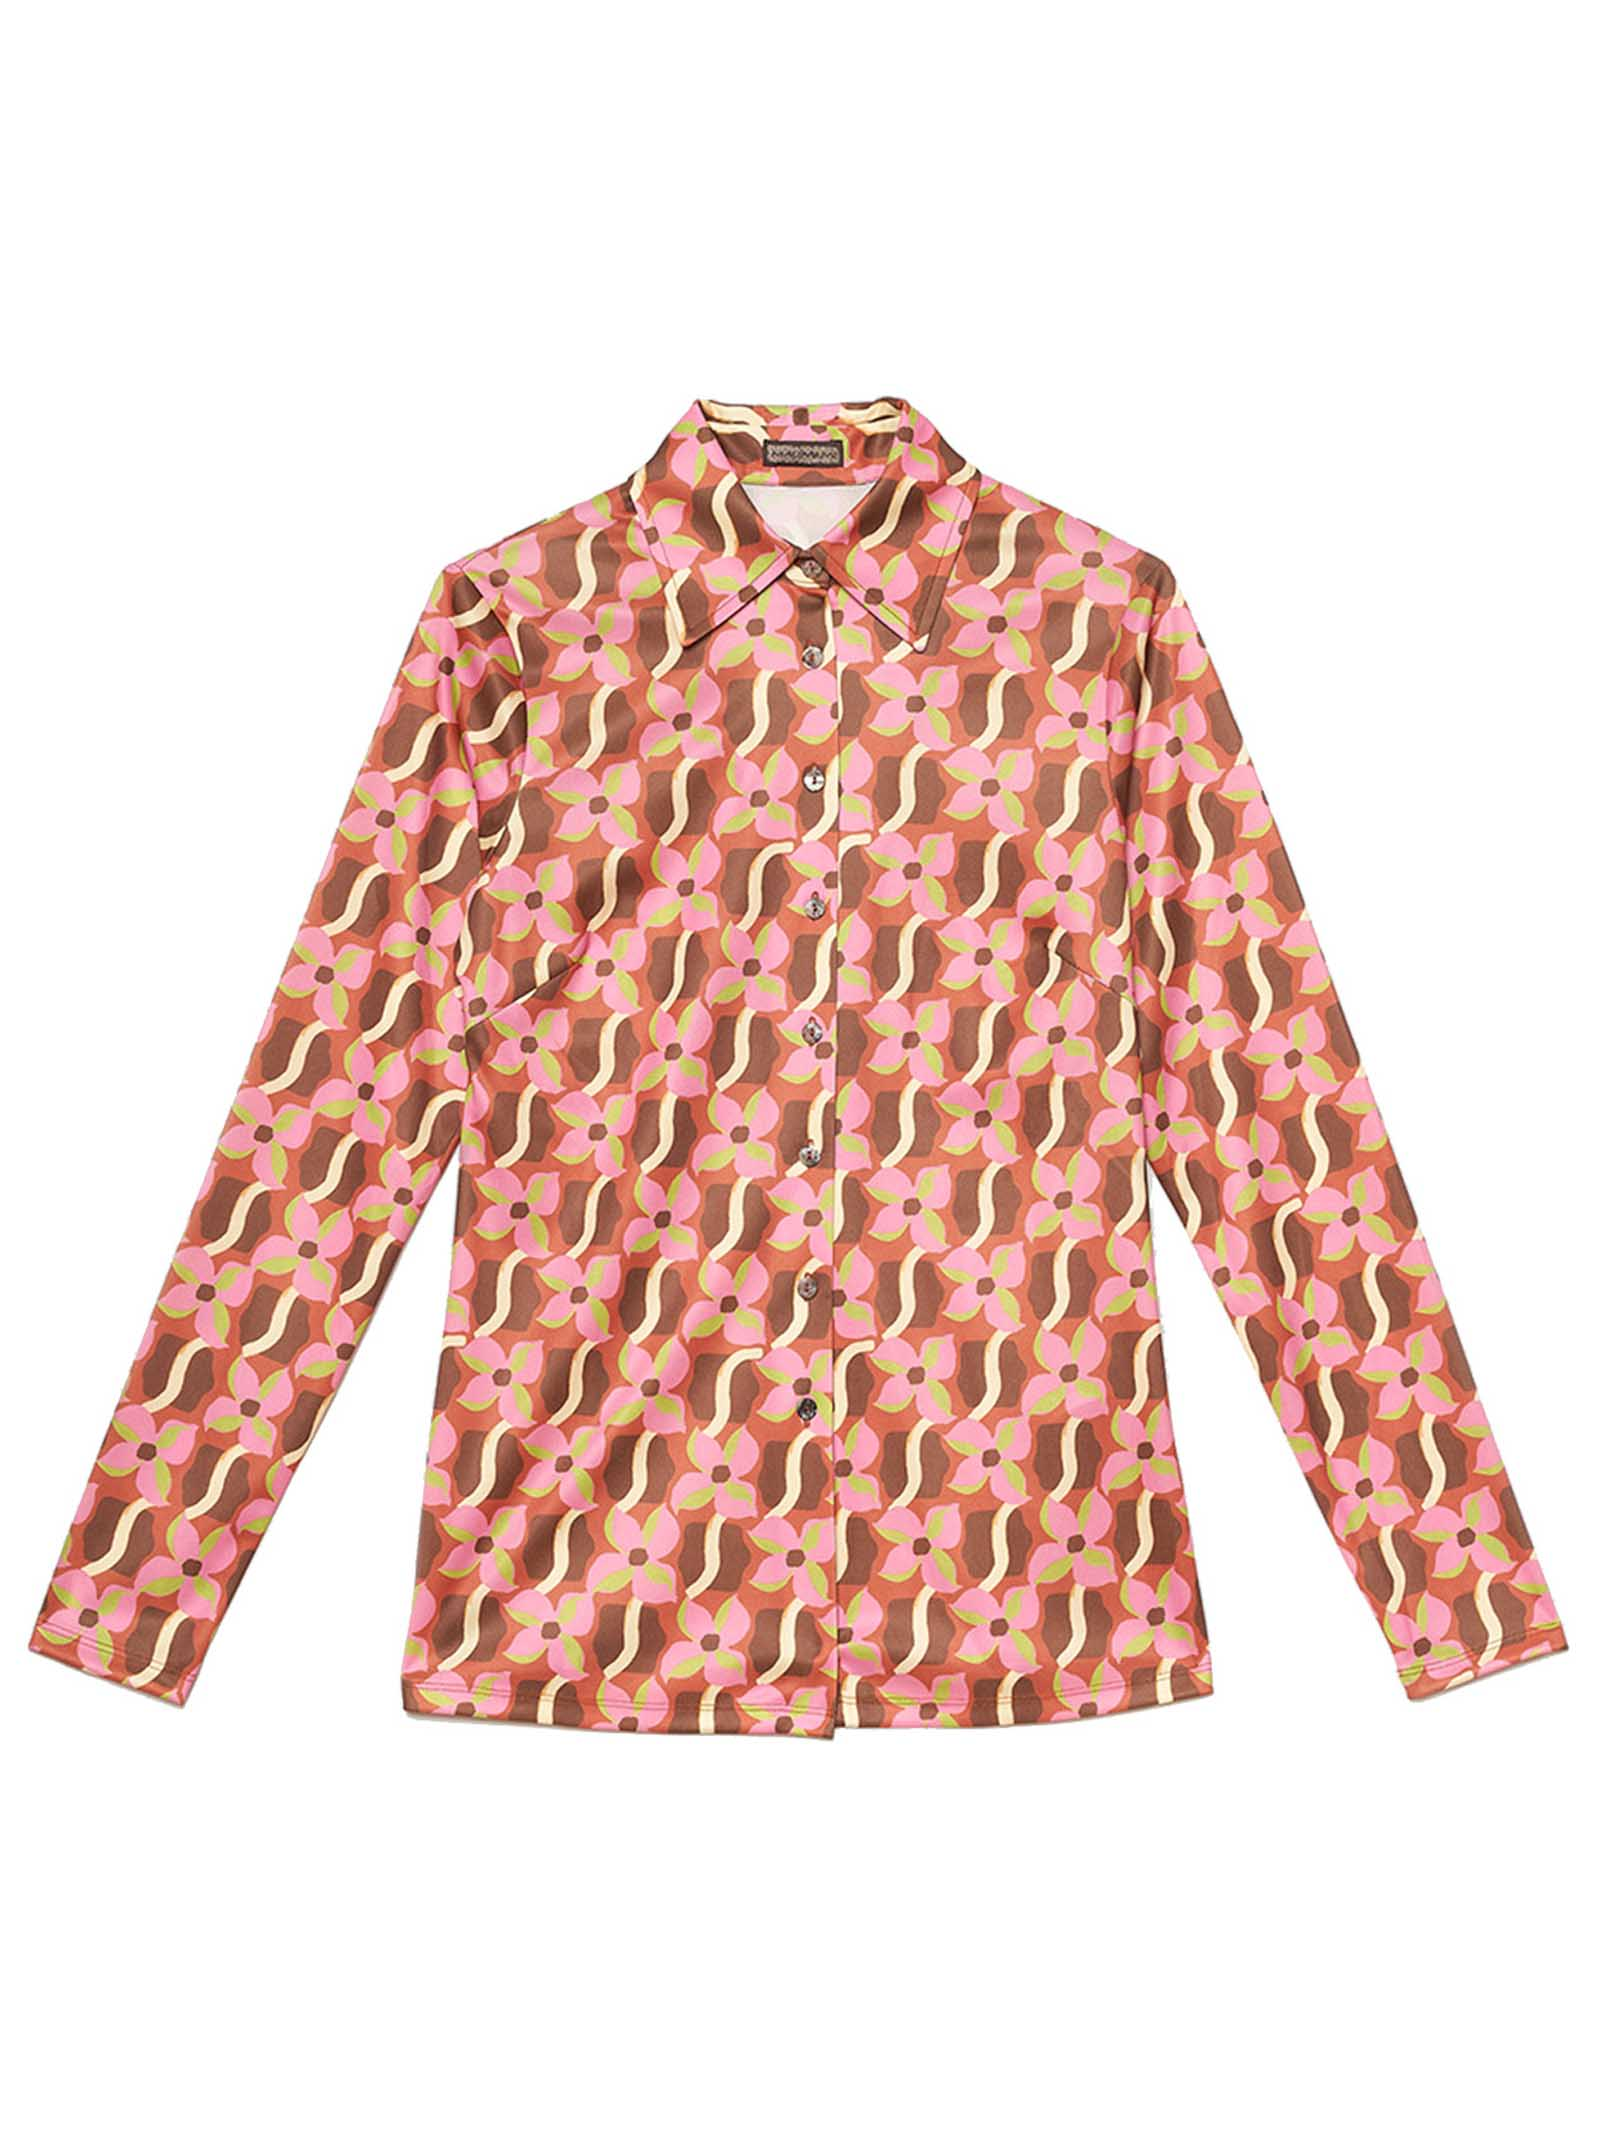 Women's Clothing Wavy Daff Jersey Stretch Shirt Printed in Pink with Pattern Maliparmi | Shirts and tops | JM445570524B3251